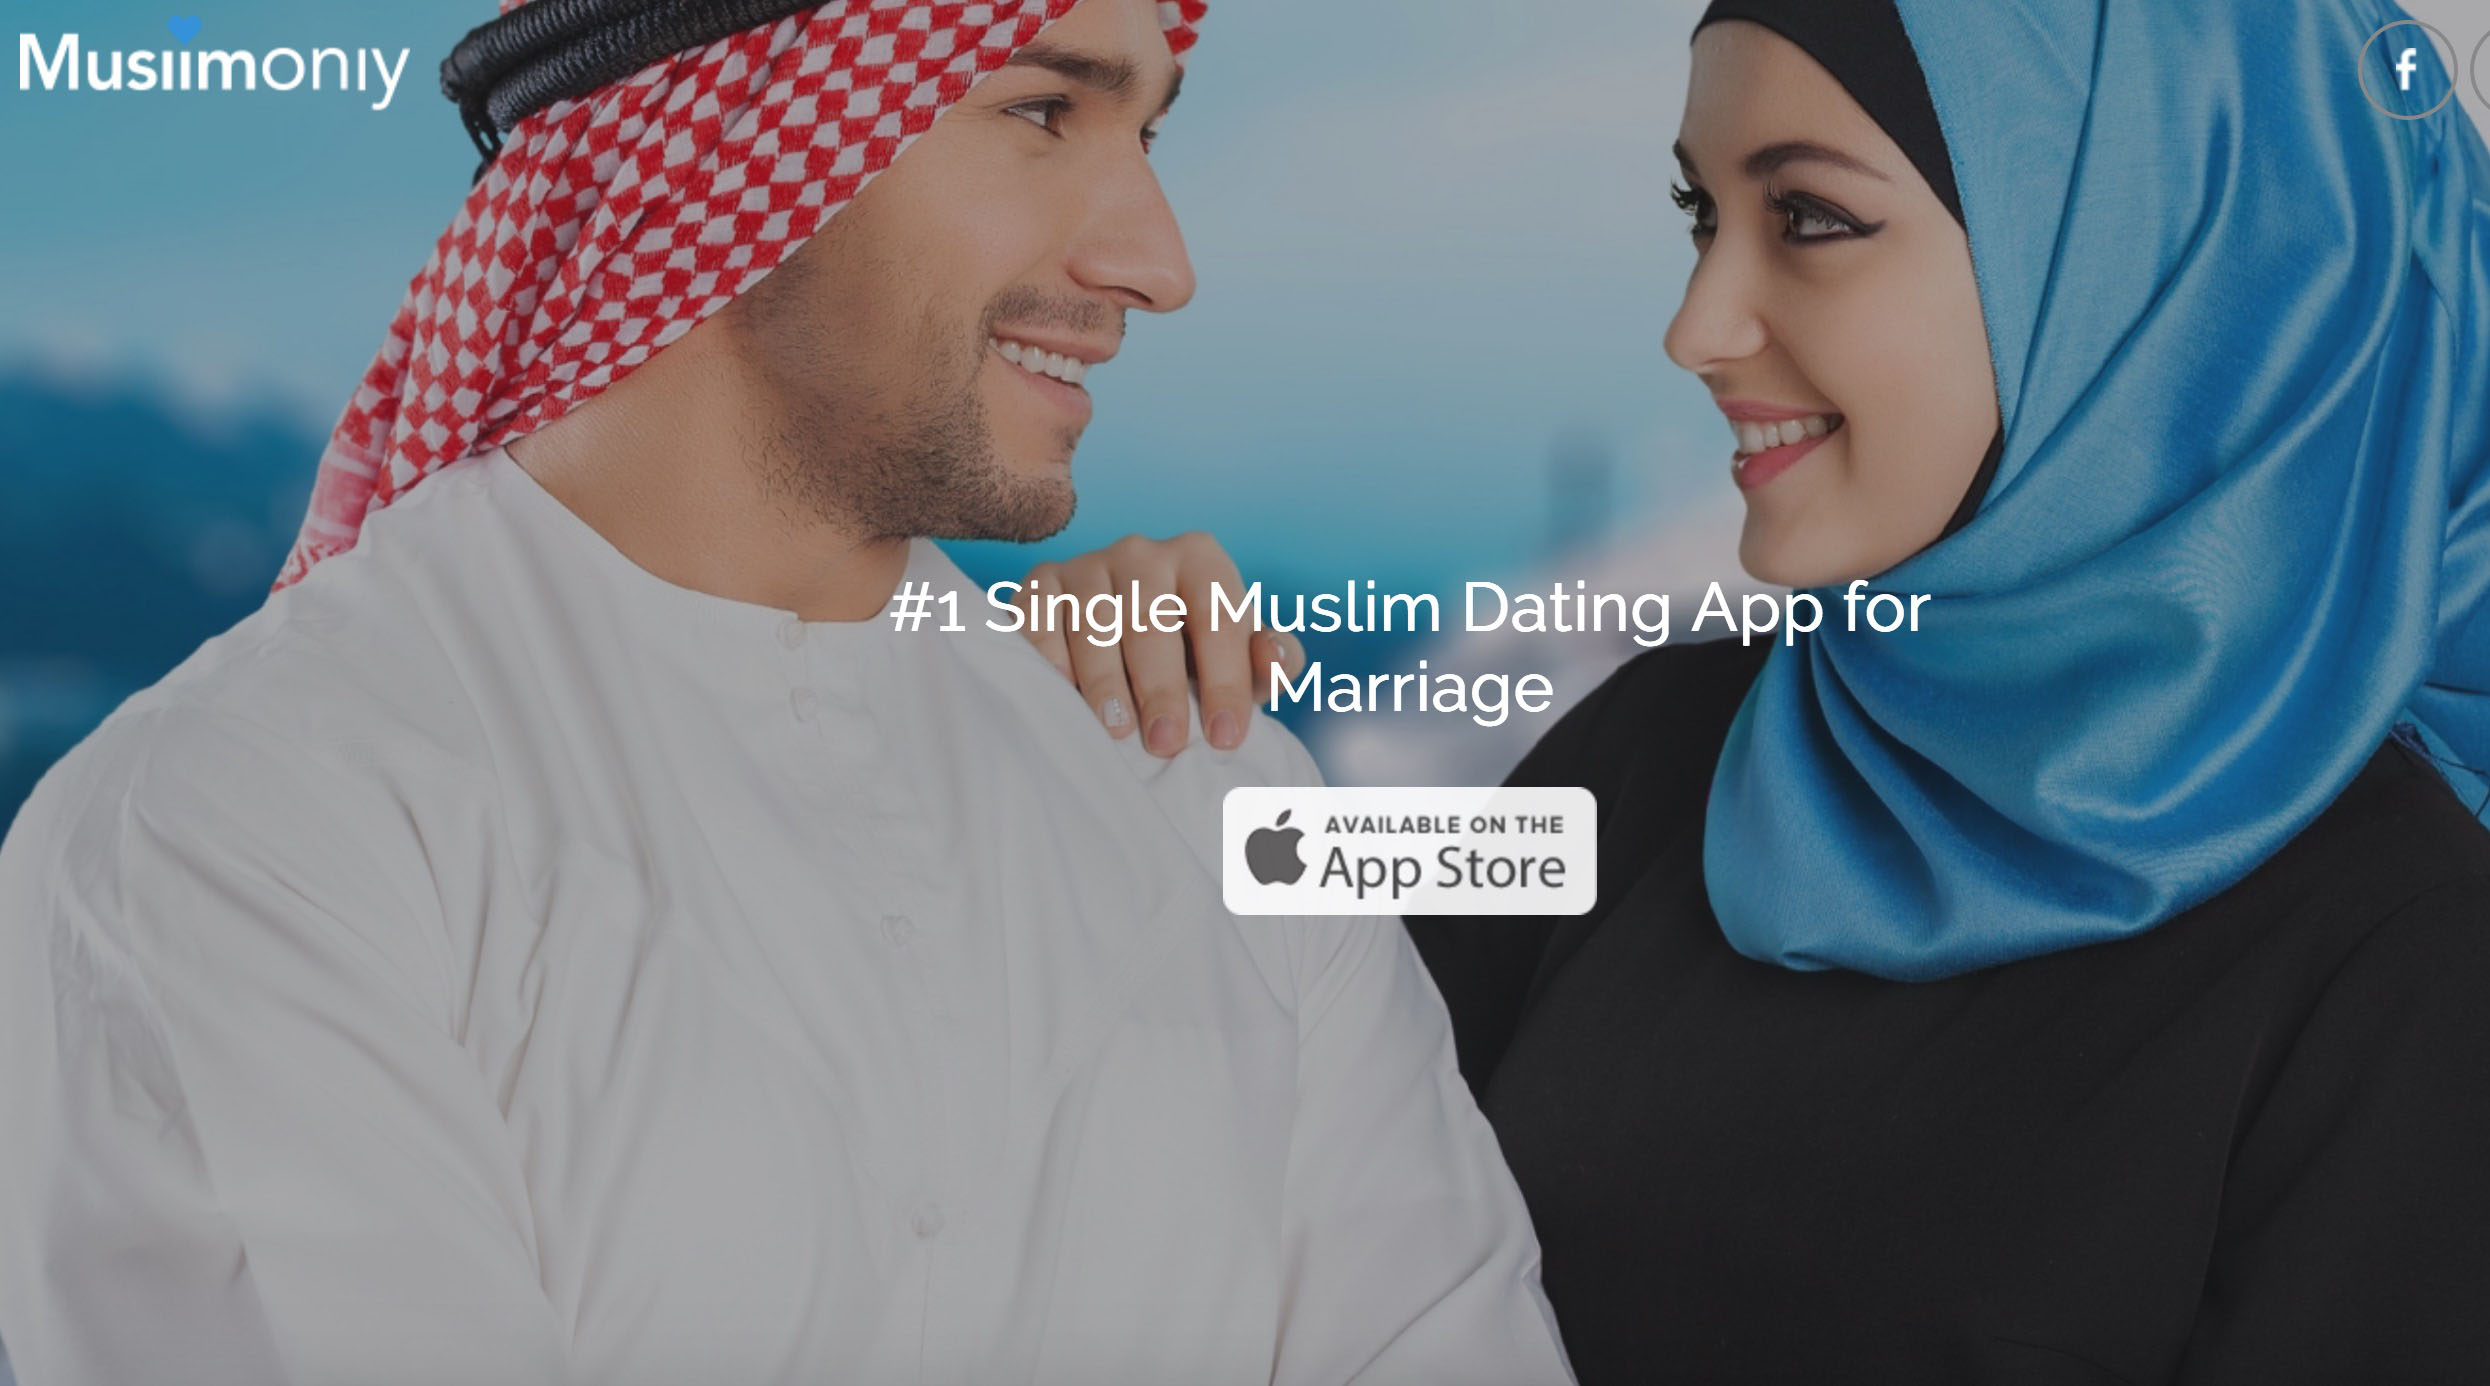 California dating for muslims